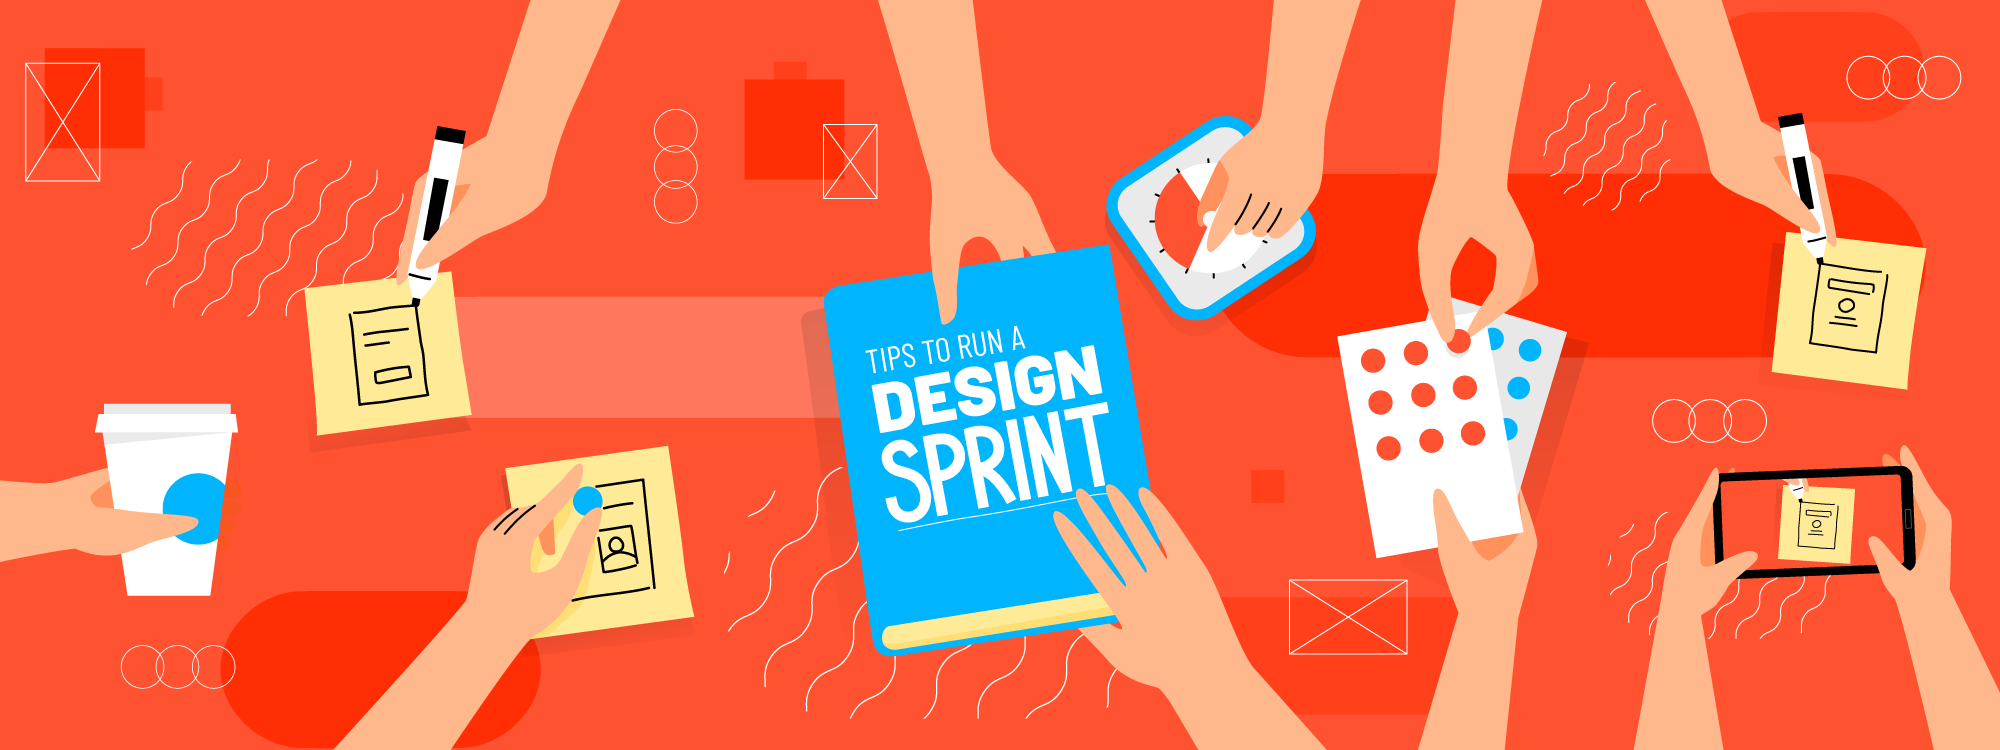 18 Tips to Run a Design Sprint